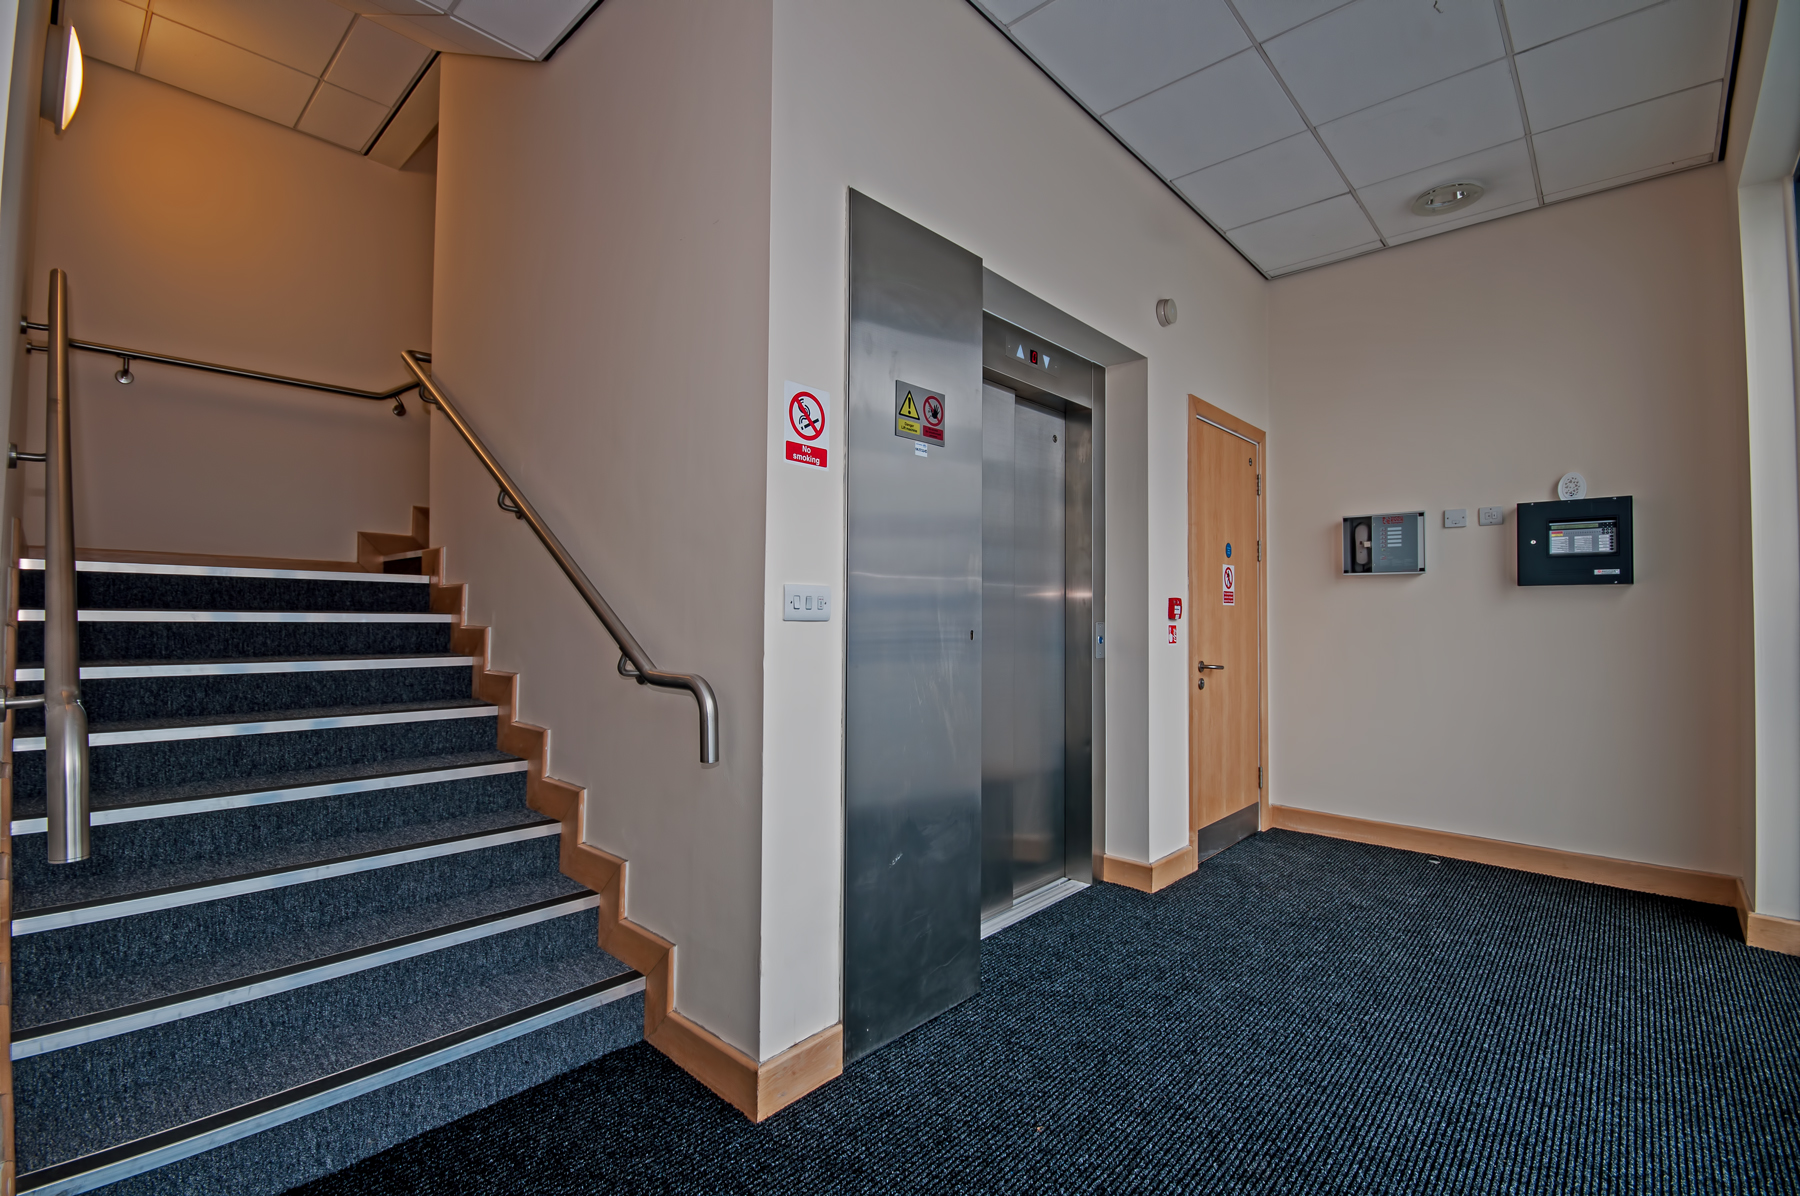 Rowlandsway 16 Wythenshawe Ground Floor Entrance